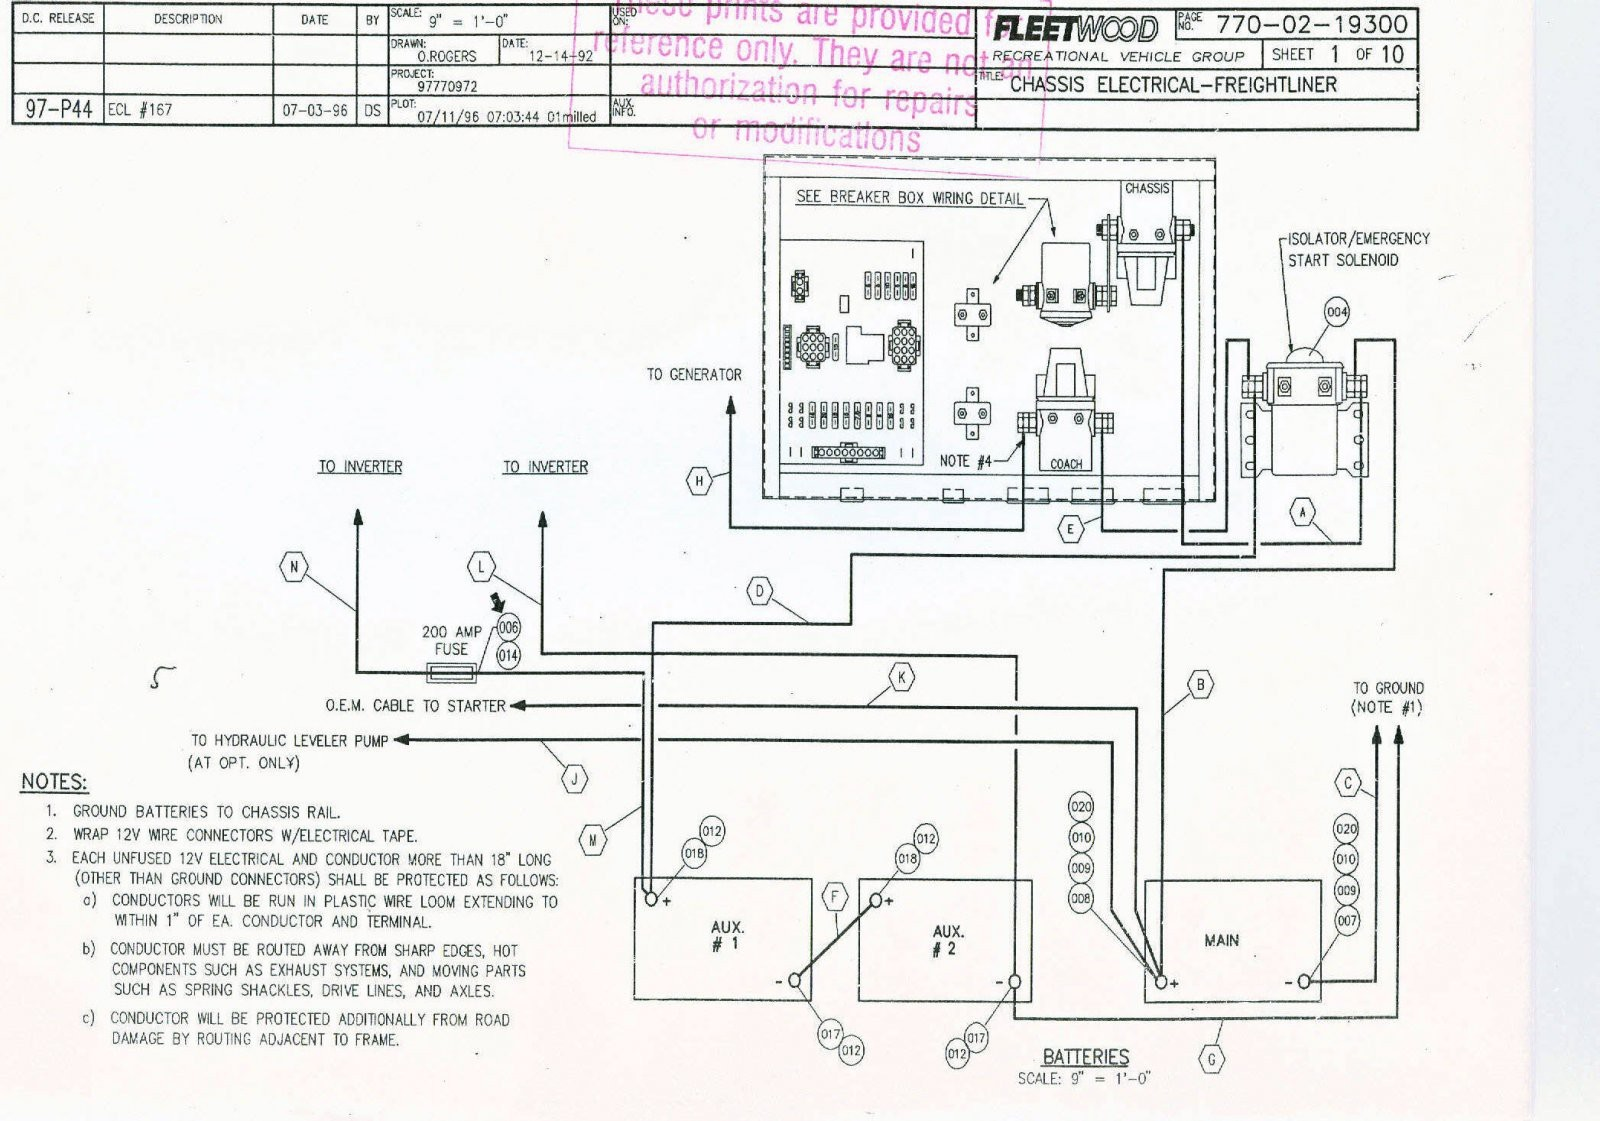 fleetwood rv wiring diagram luxury fleetwood tioga wiring diagram electrical drawing wiring diagram e280a2 of fleetwood rv wiring diagram 1986 southwind fuel tank diagram wiring block diagram